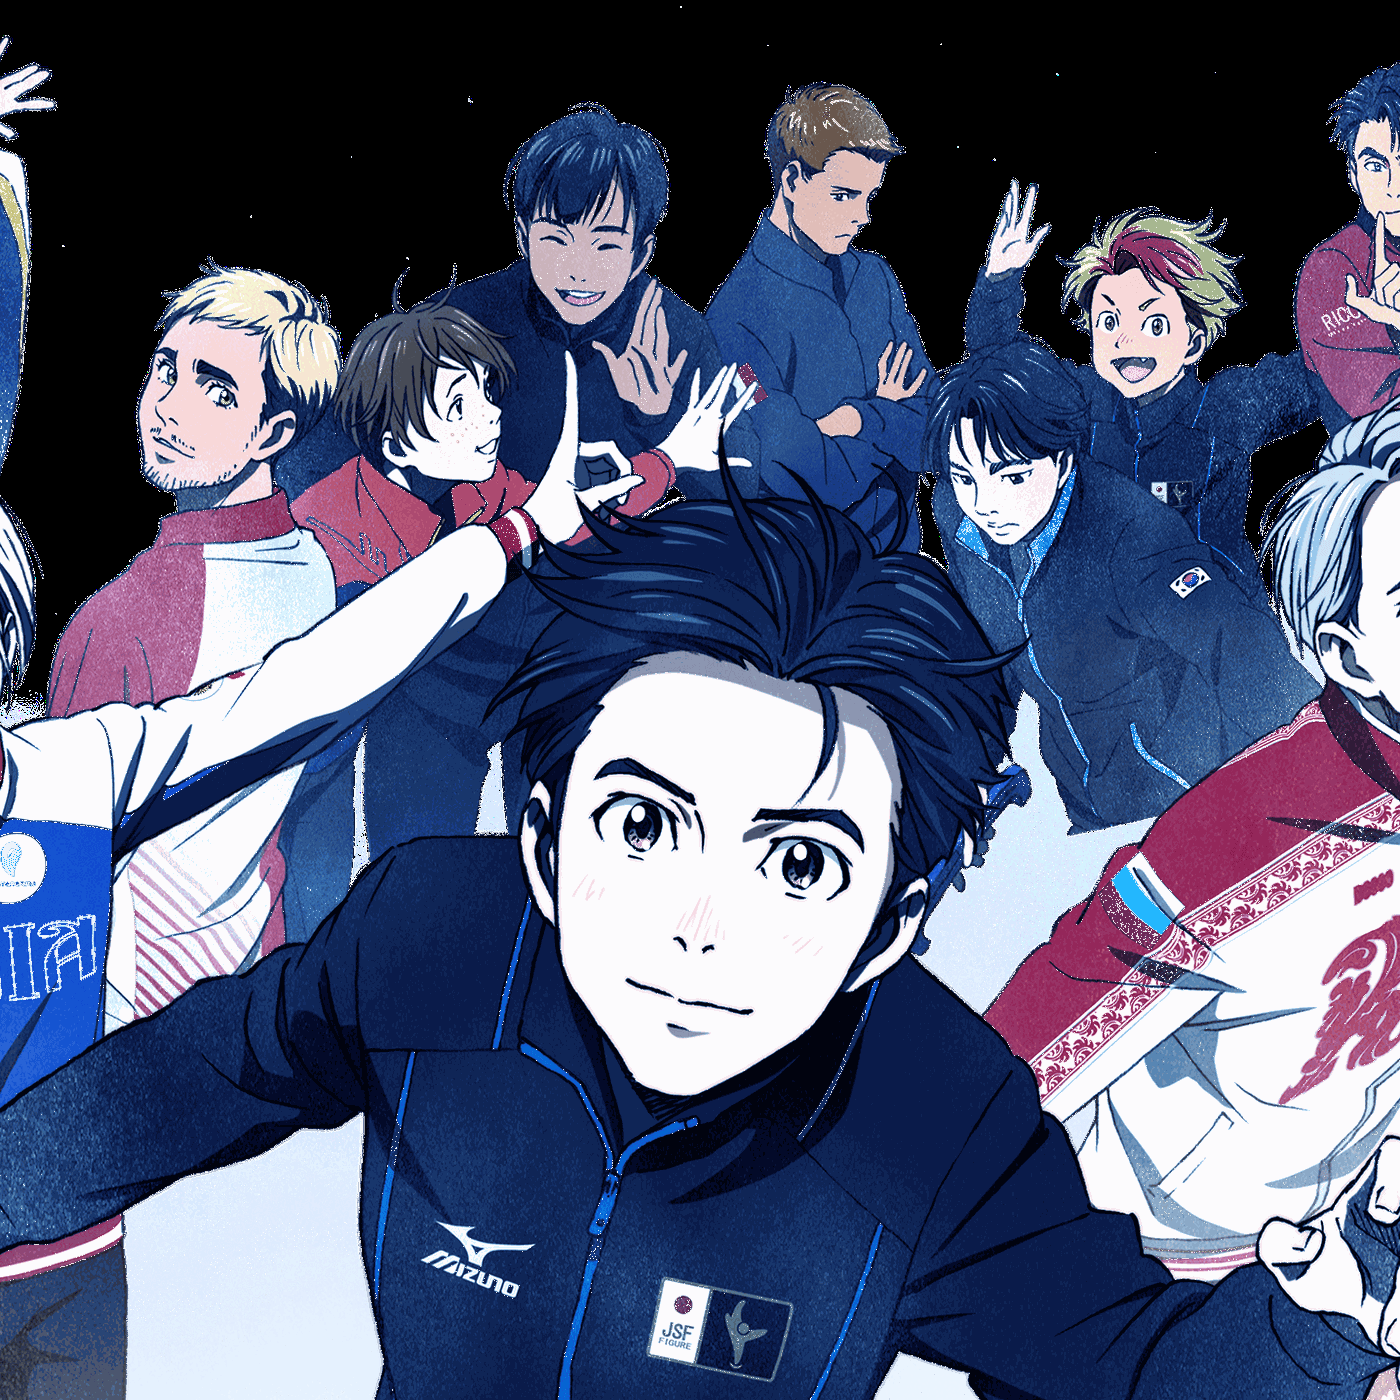 Yuri drawing easy. On ice everything you